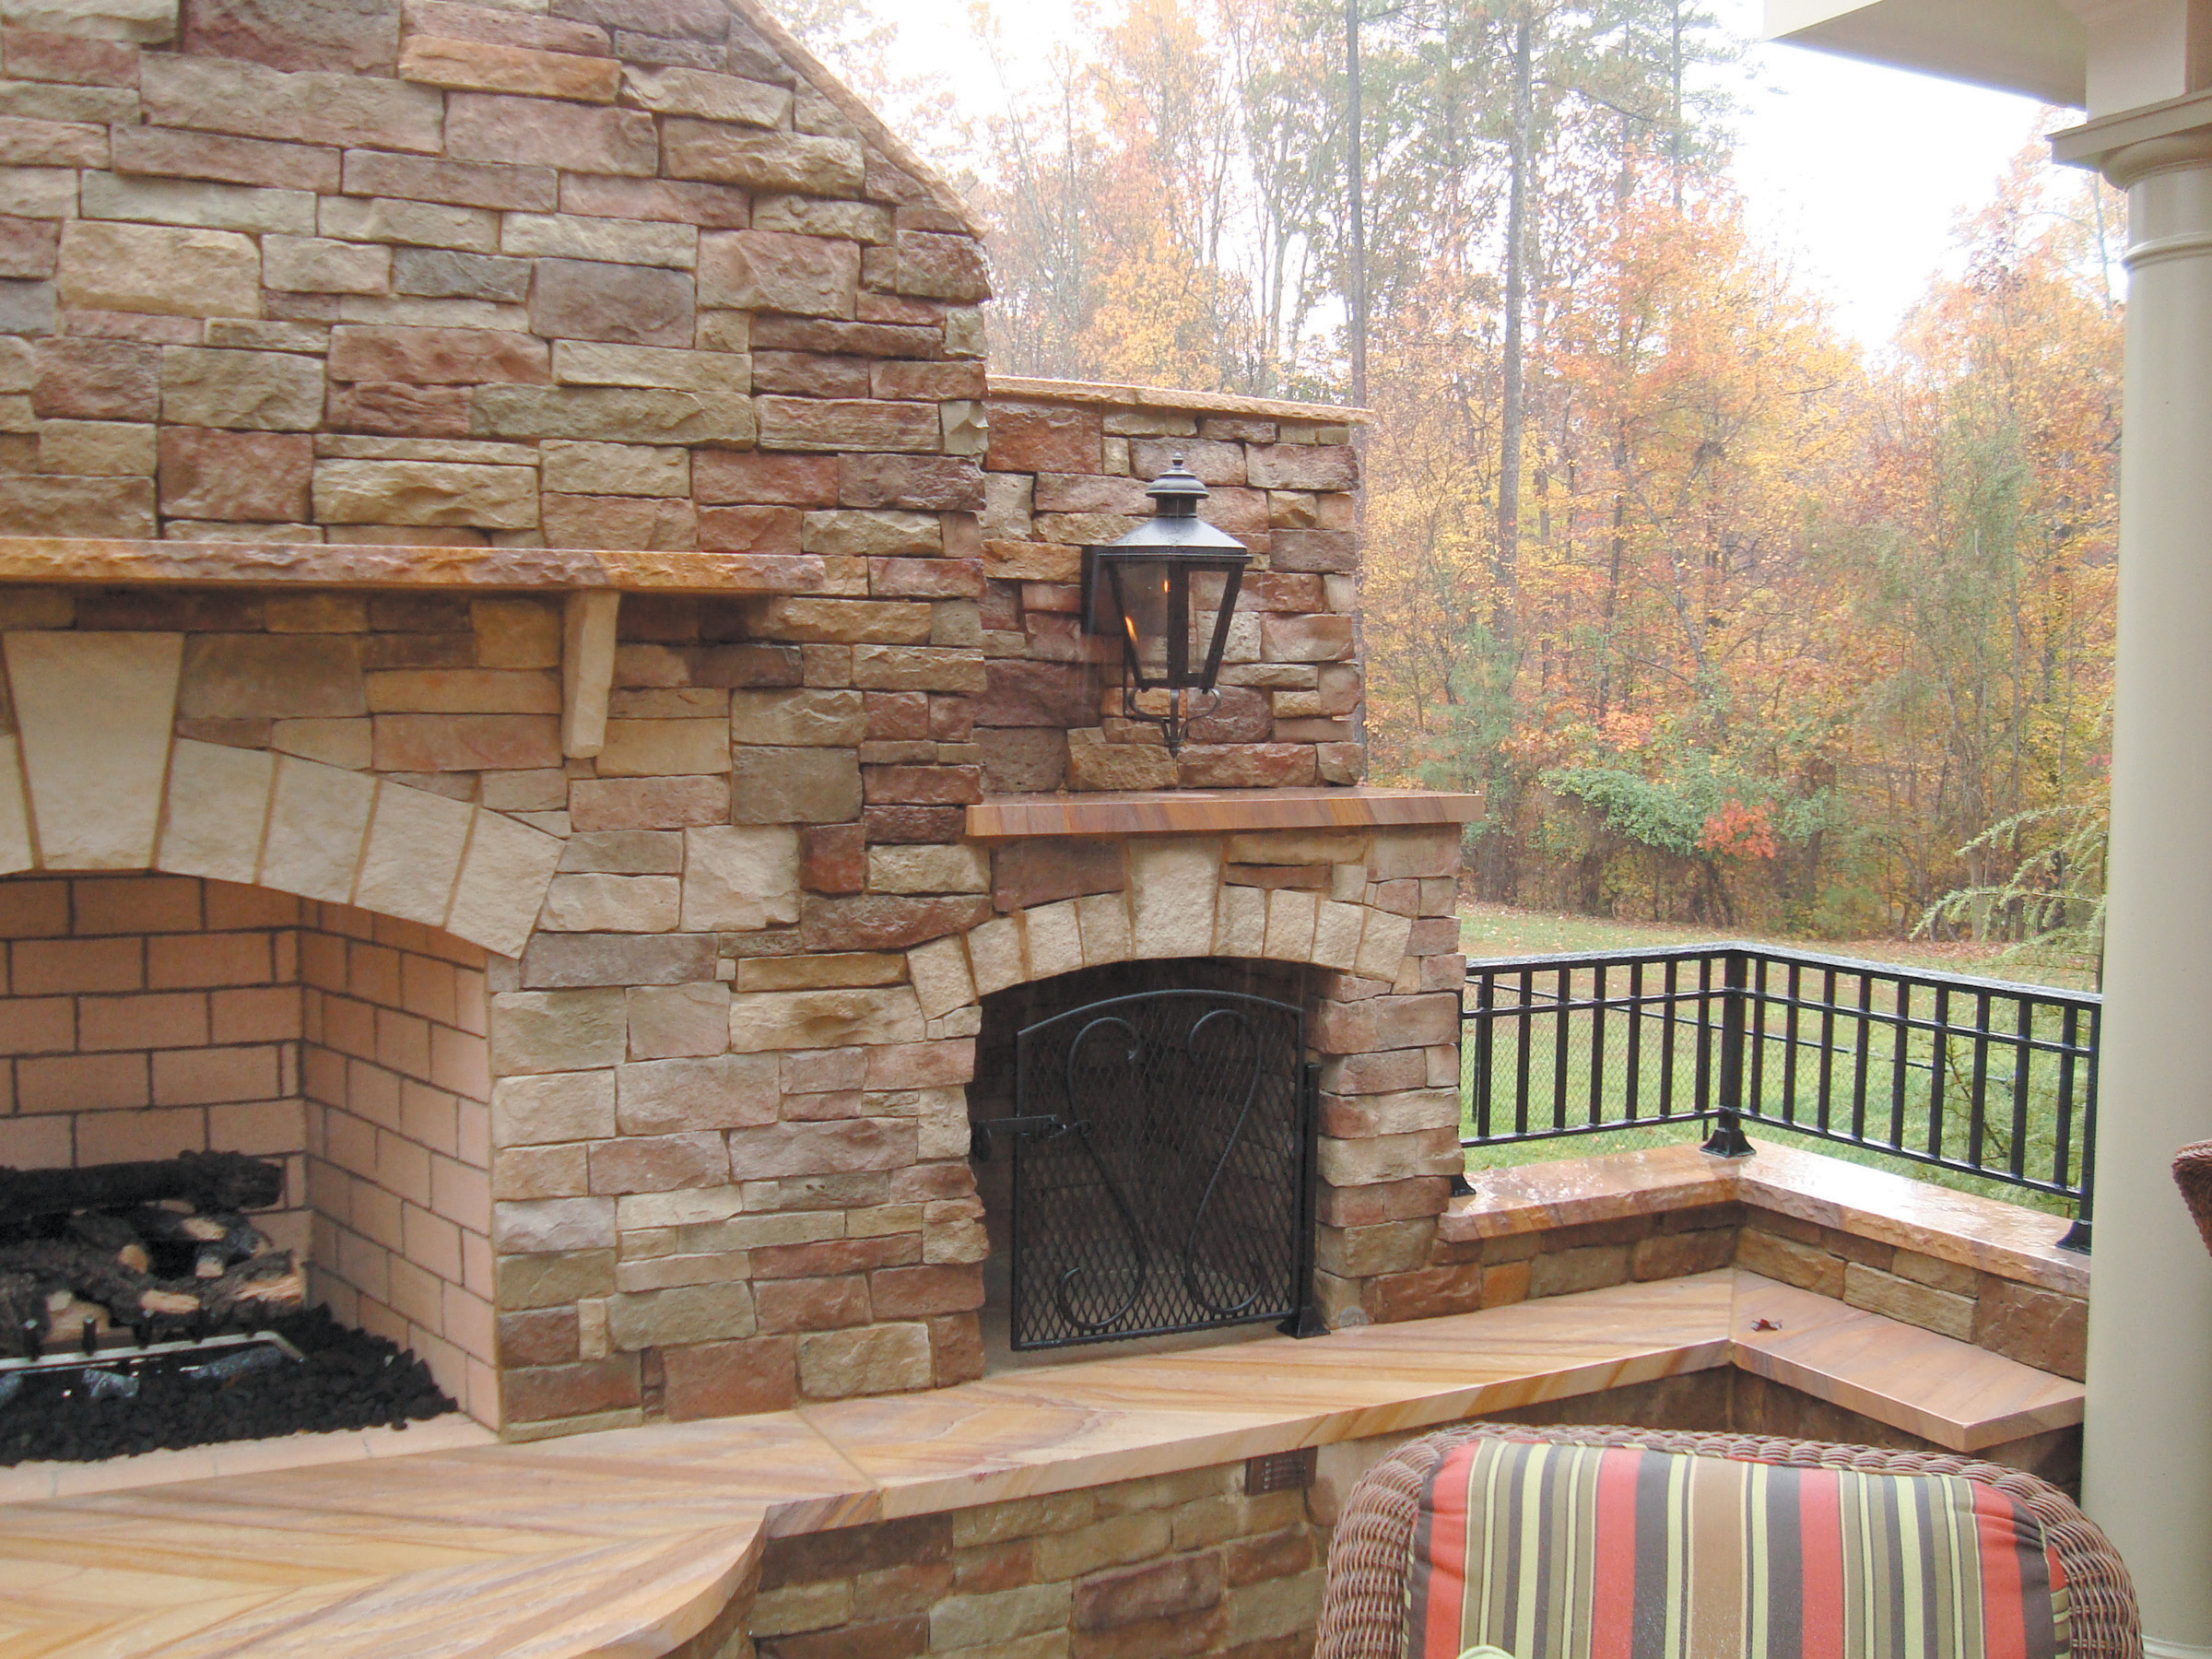 stones ideas simple v cultured saura of fireplace dutt stone